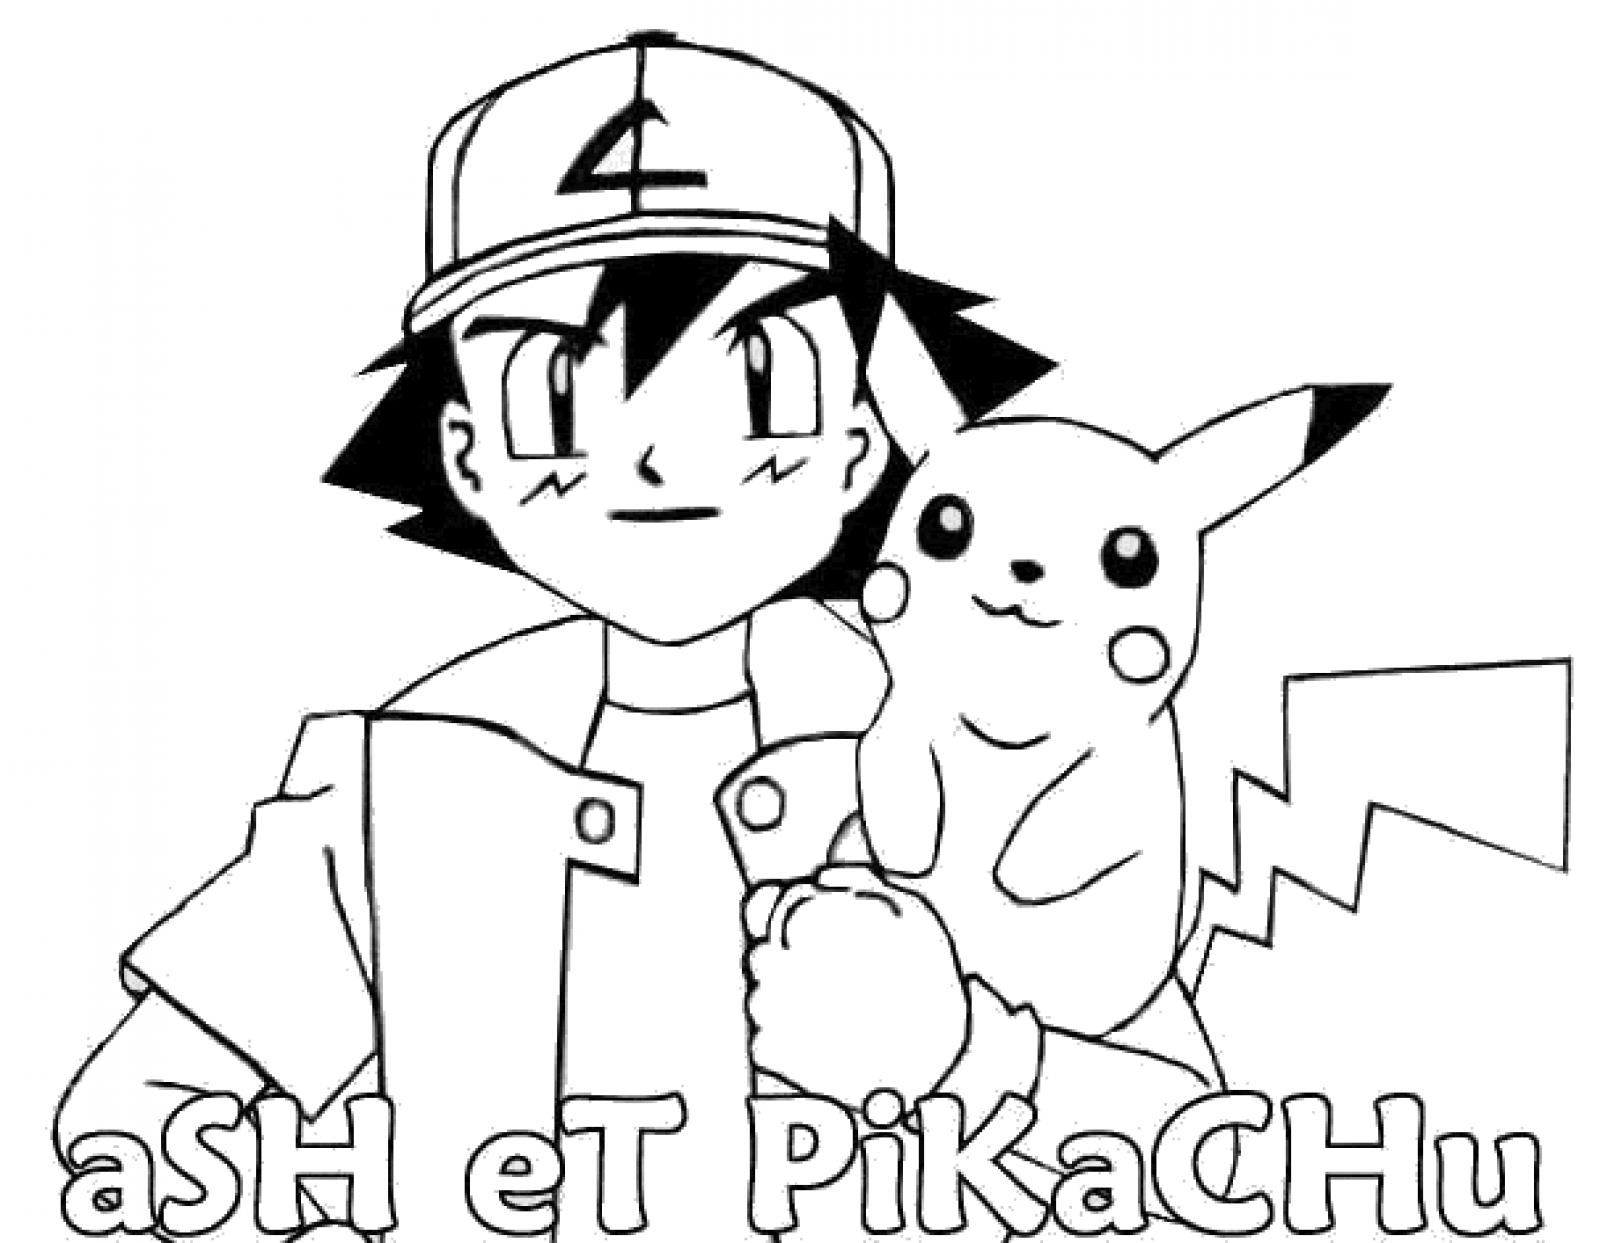 Cute Pikachu Coloring Pages Pikachu Coloring Page Pokemon Coloring Pokemon Coloring Pages